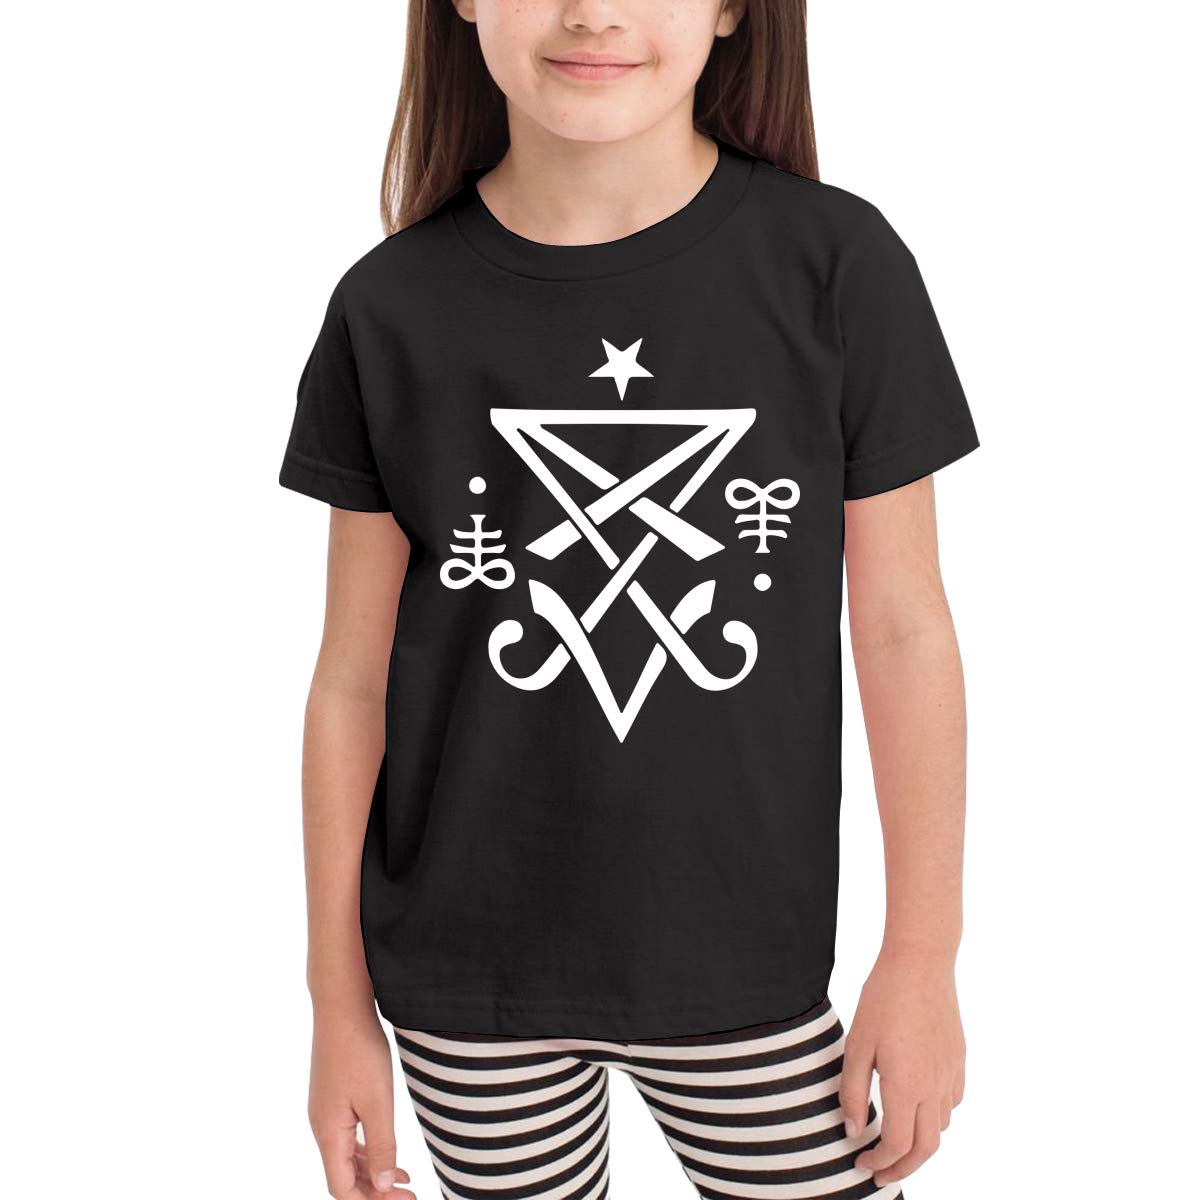 Kids T-Shirt Tops Black Occult Sigil of Lucifer Satanic Unisex Youths Short Sleeve T-Shirt